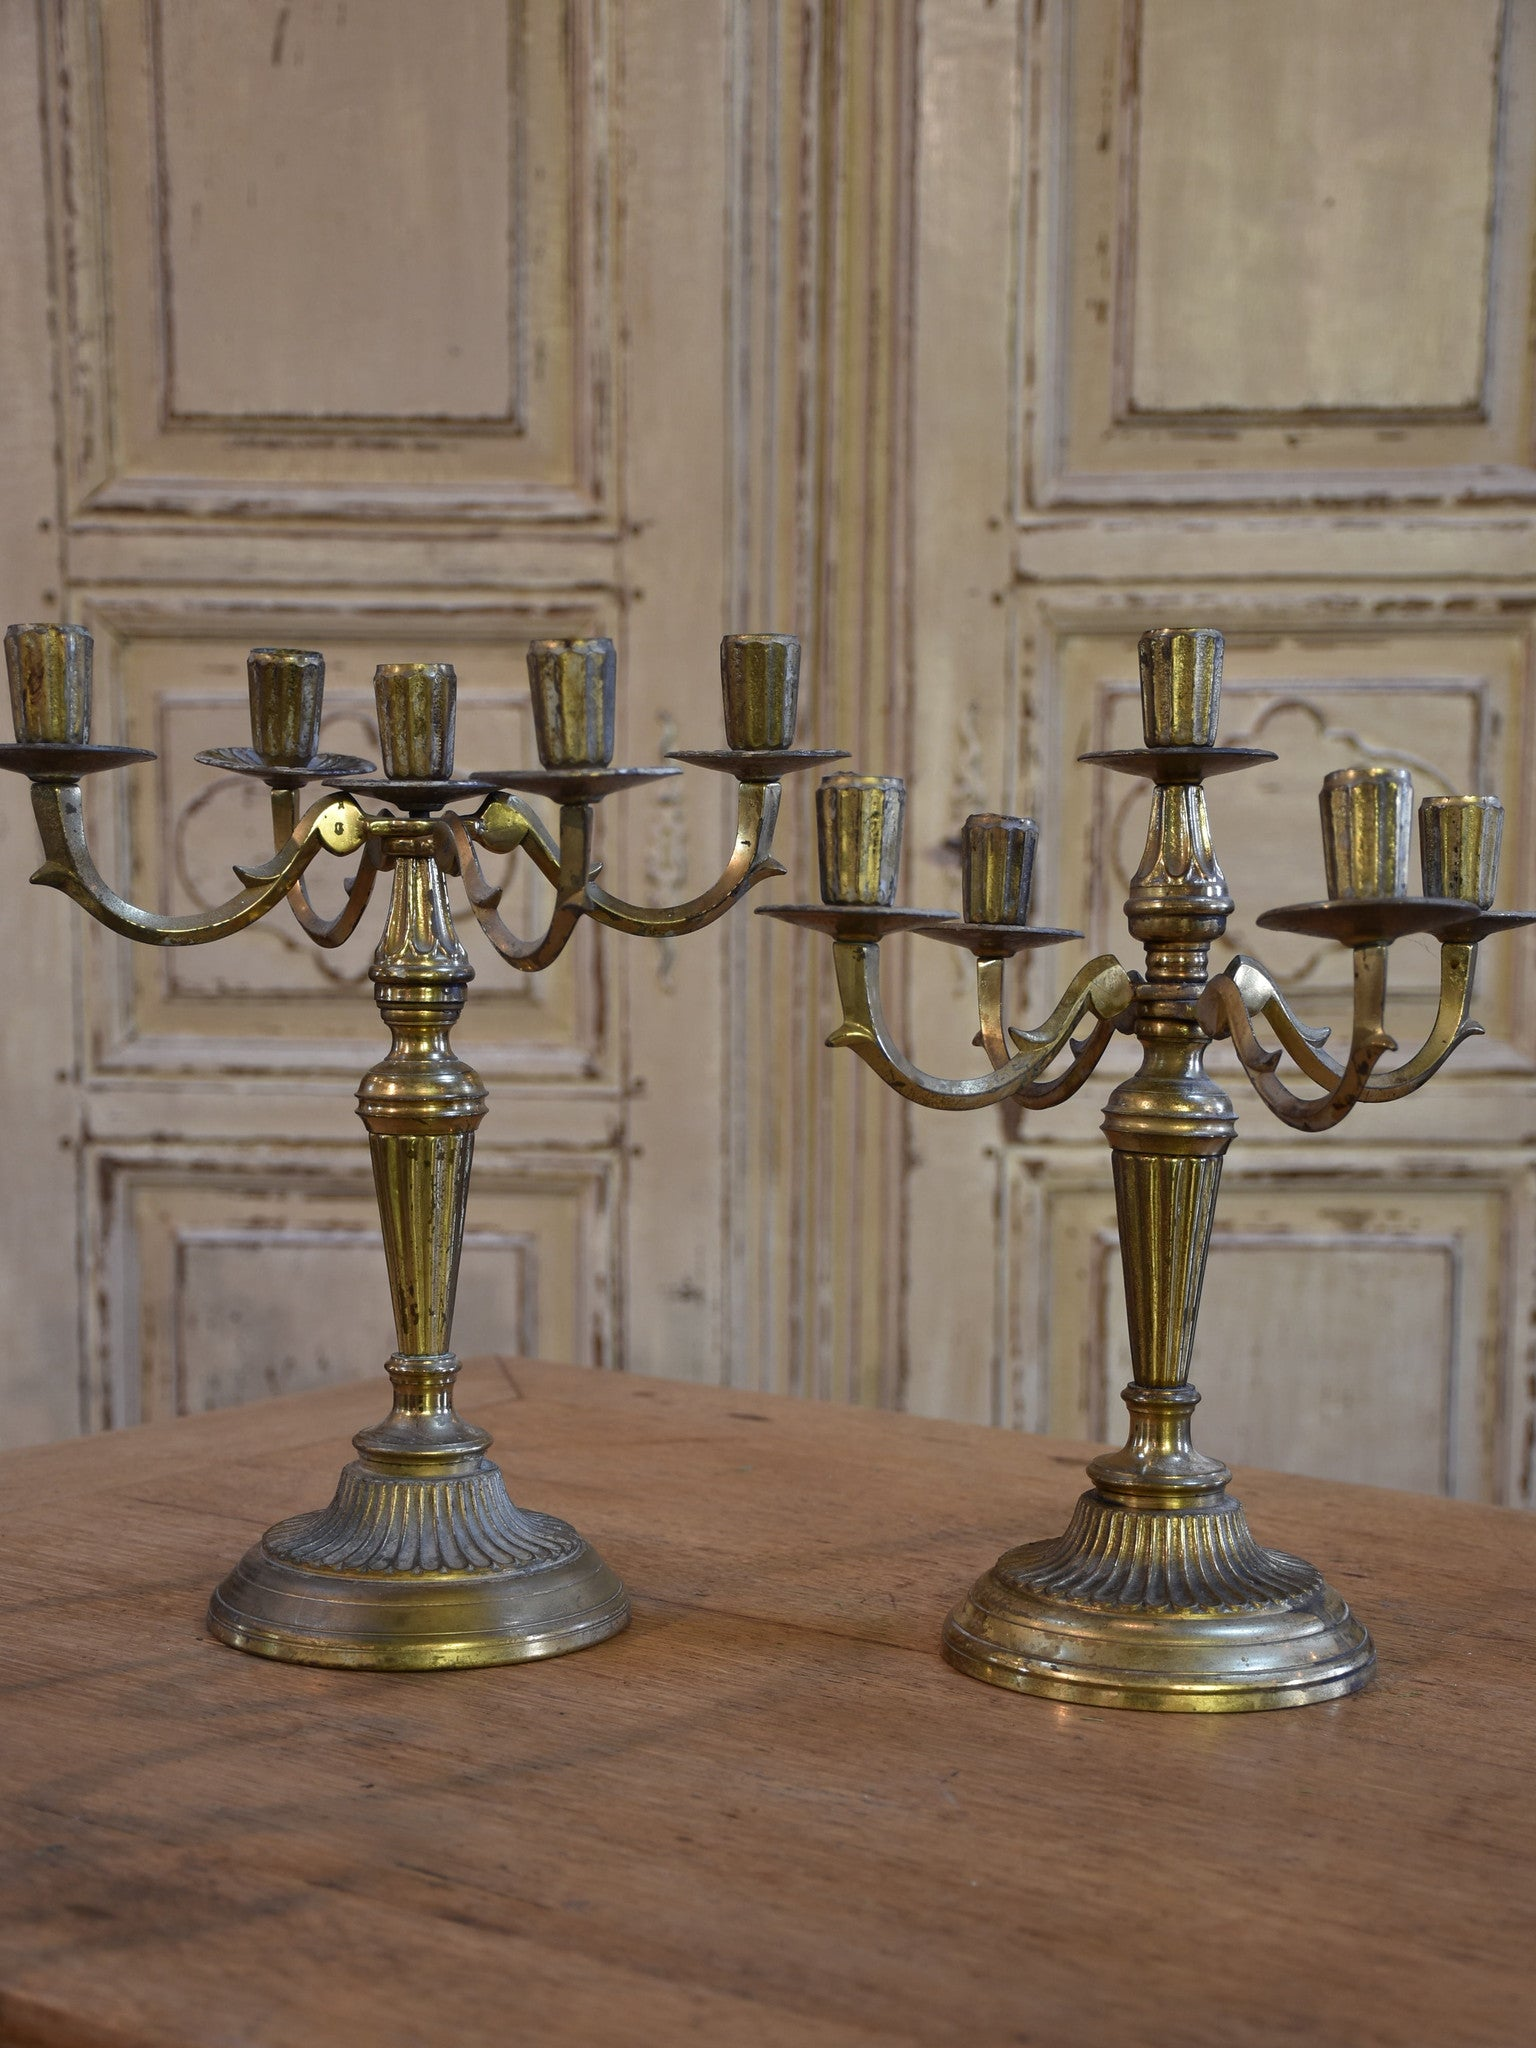 Two French vintage candlesticks – 5 branches